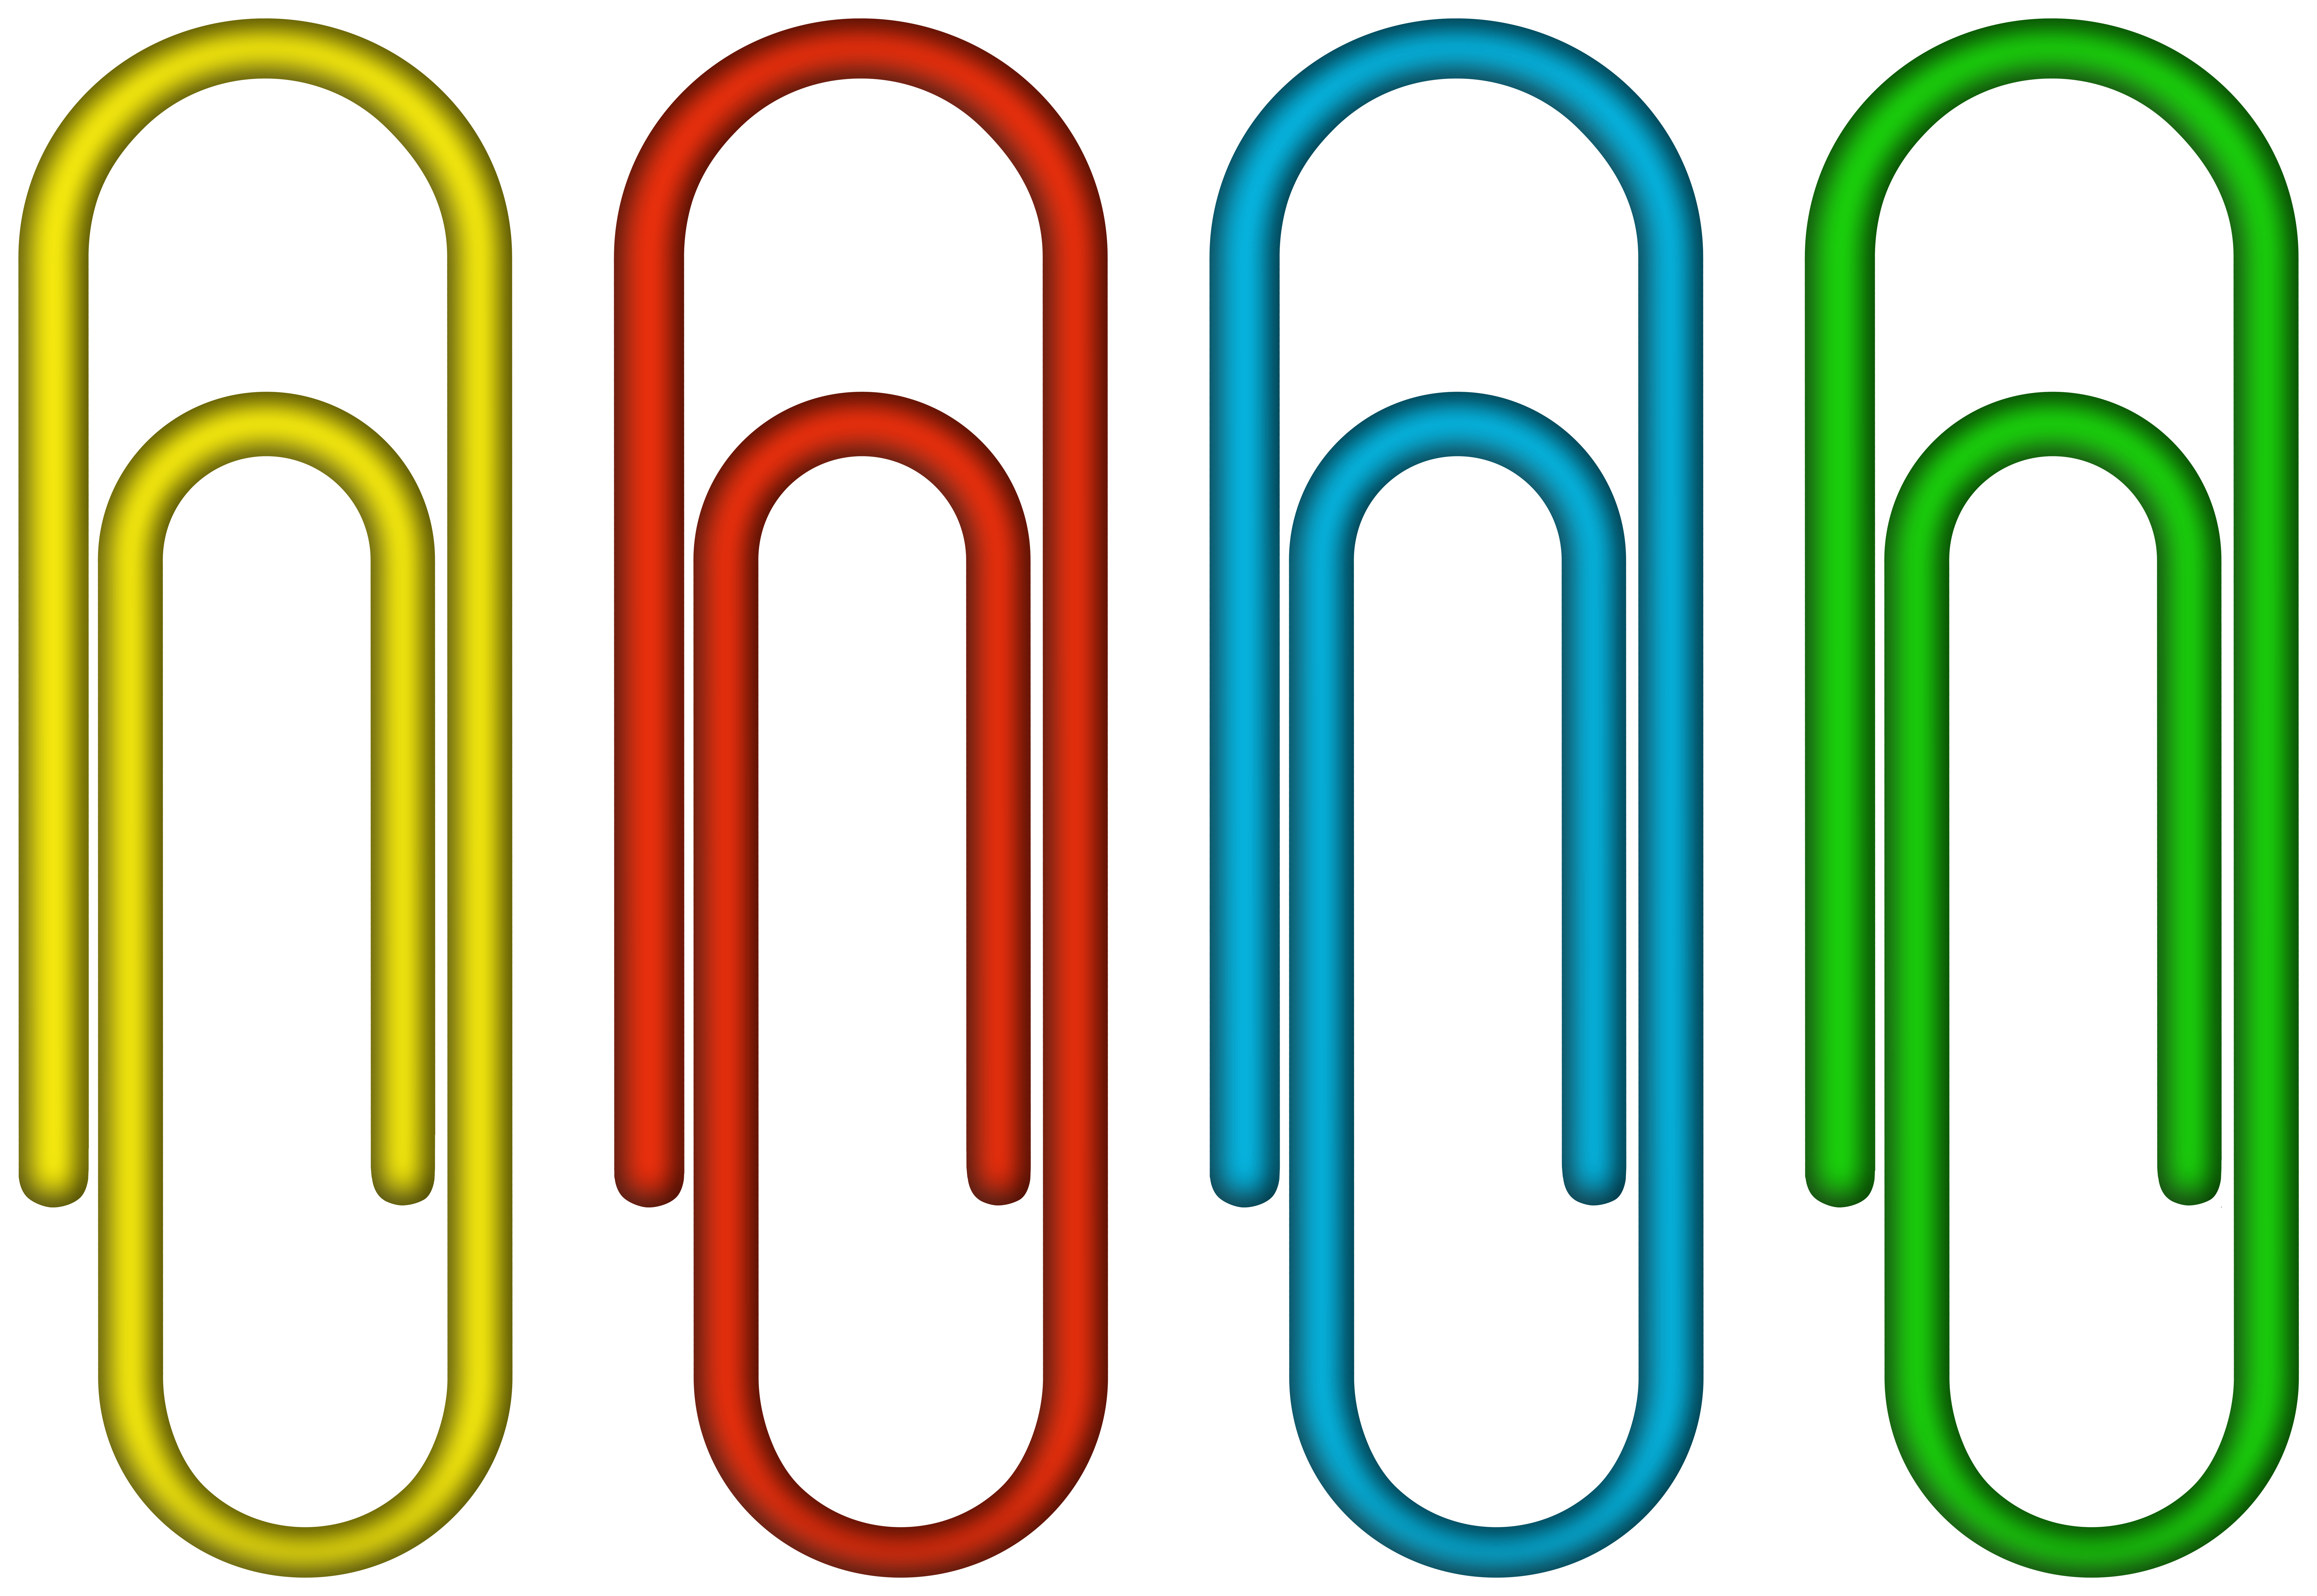 Paper clips clipart clip art library stock Colorful Paper Clips PNG Clipart Image | Gallery ... clip art library stock